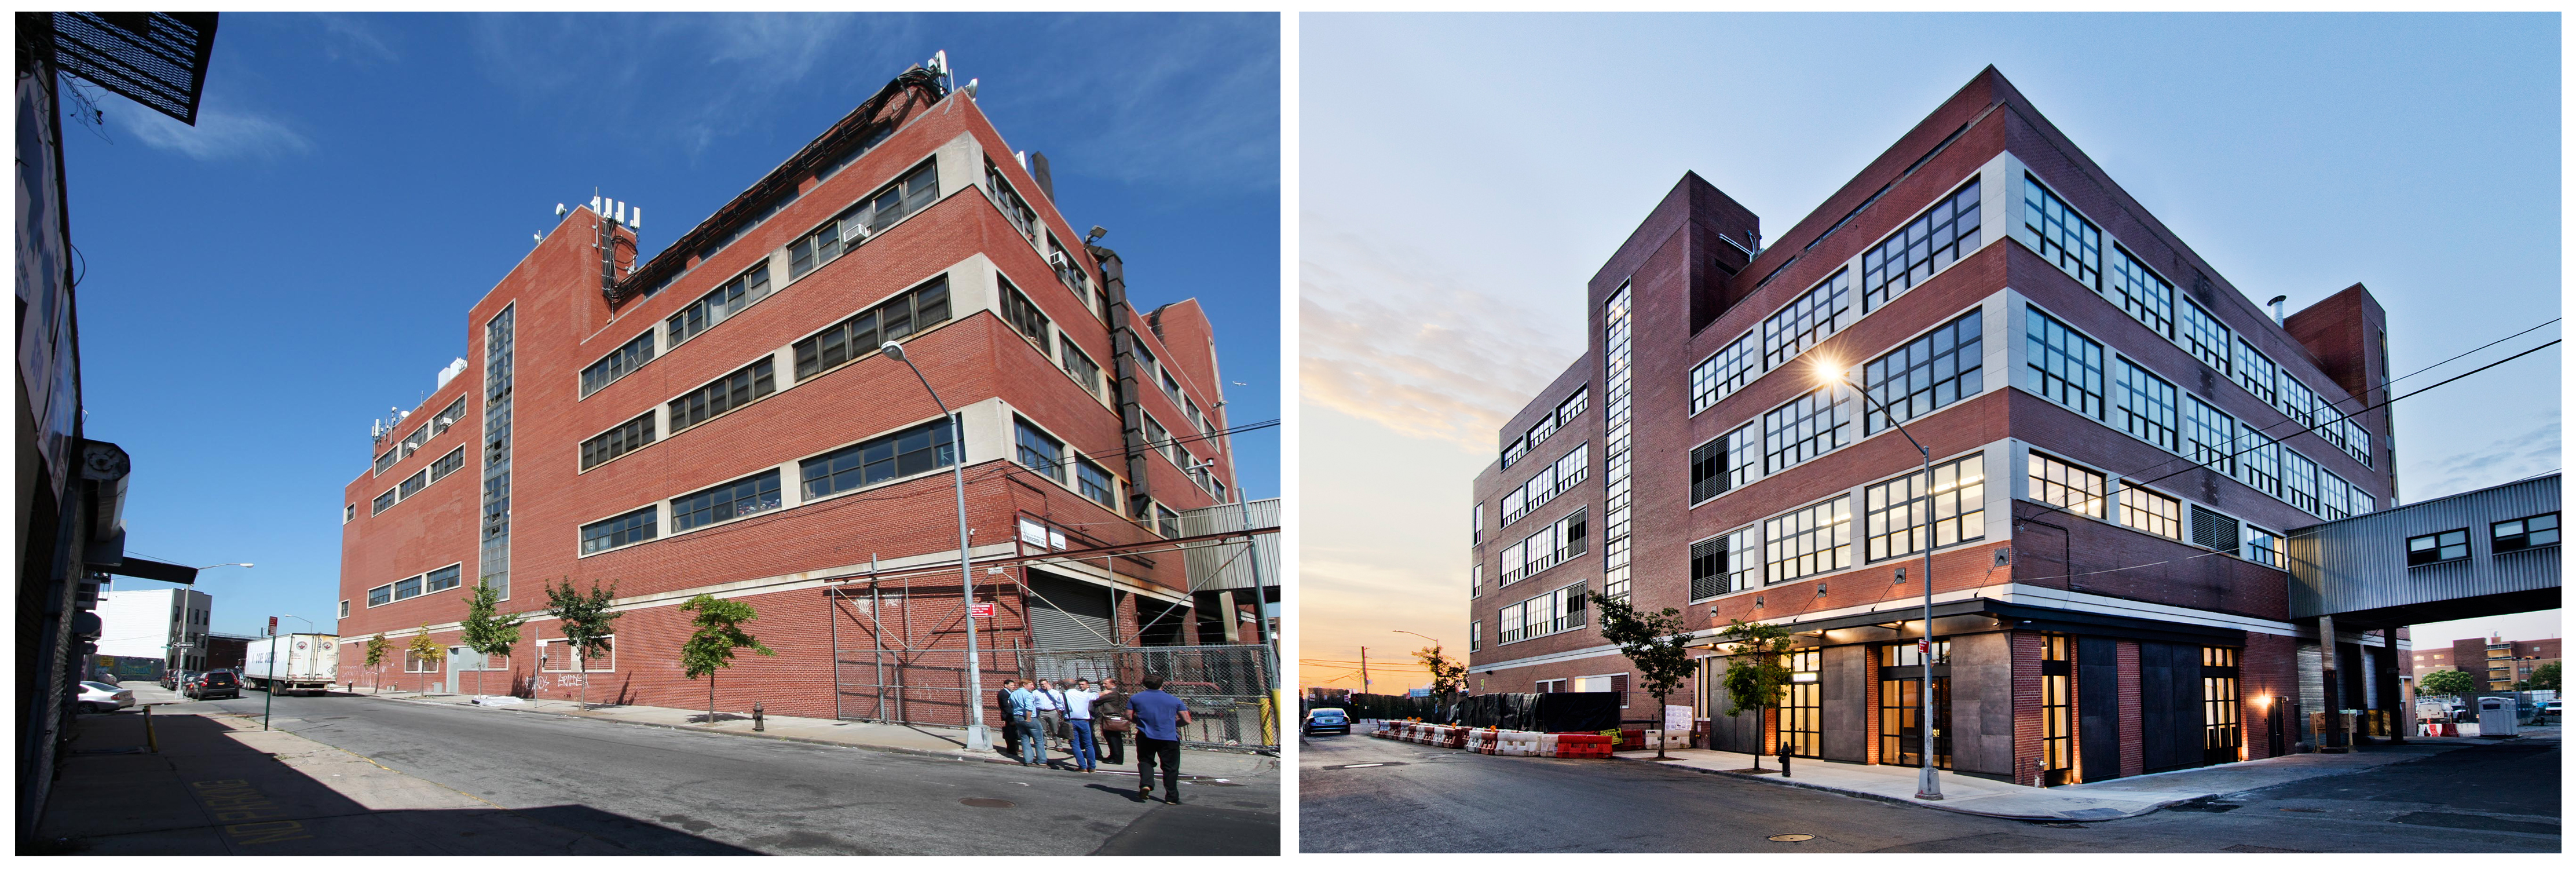 95 Evergreen Avenue, exterior, pre-conversion and post-conversion. Photos by Connie Zhou